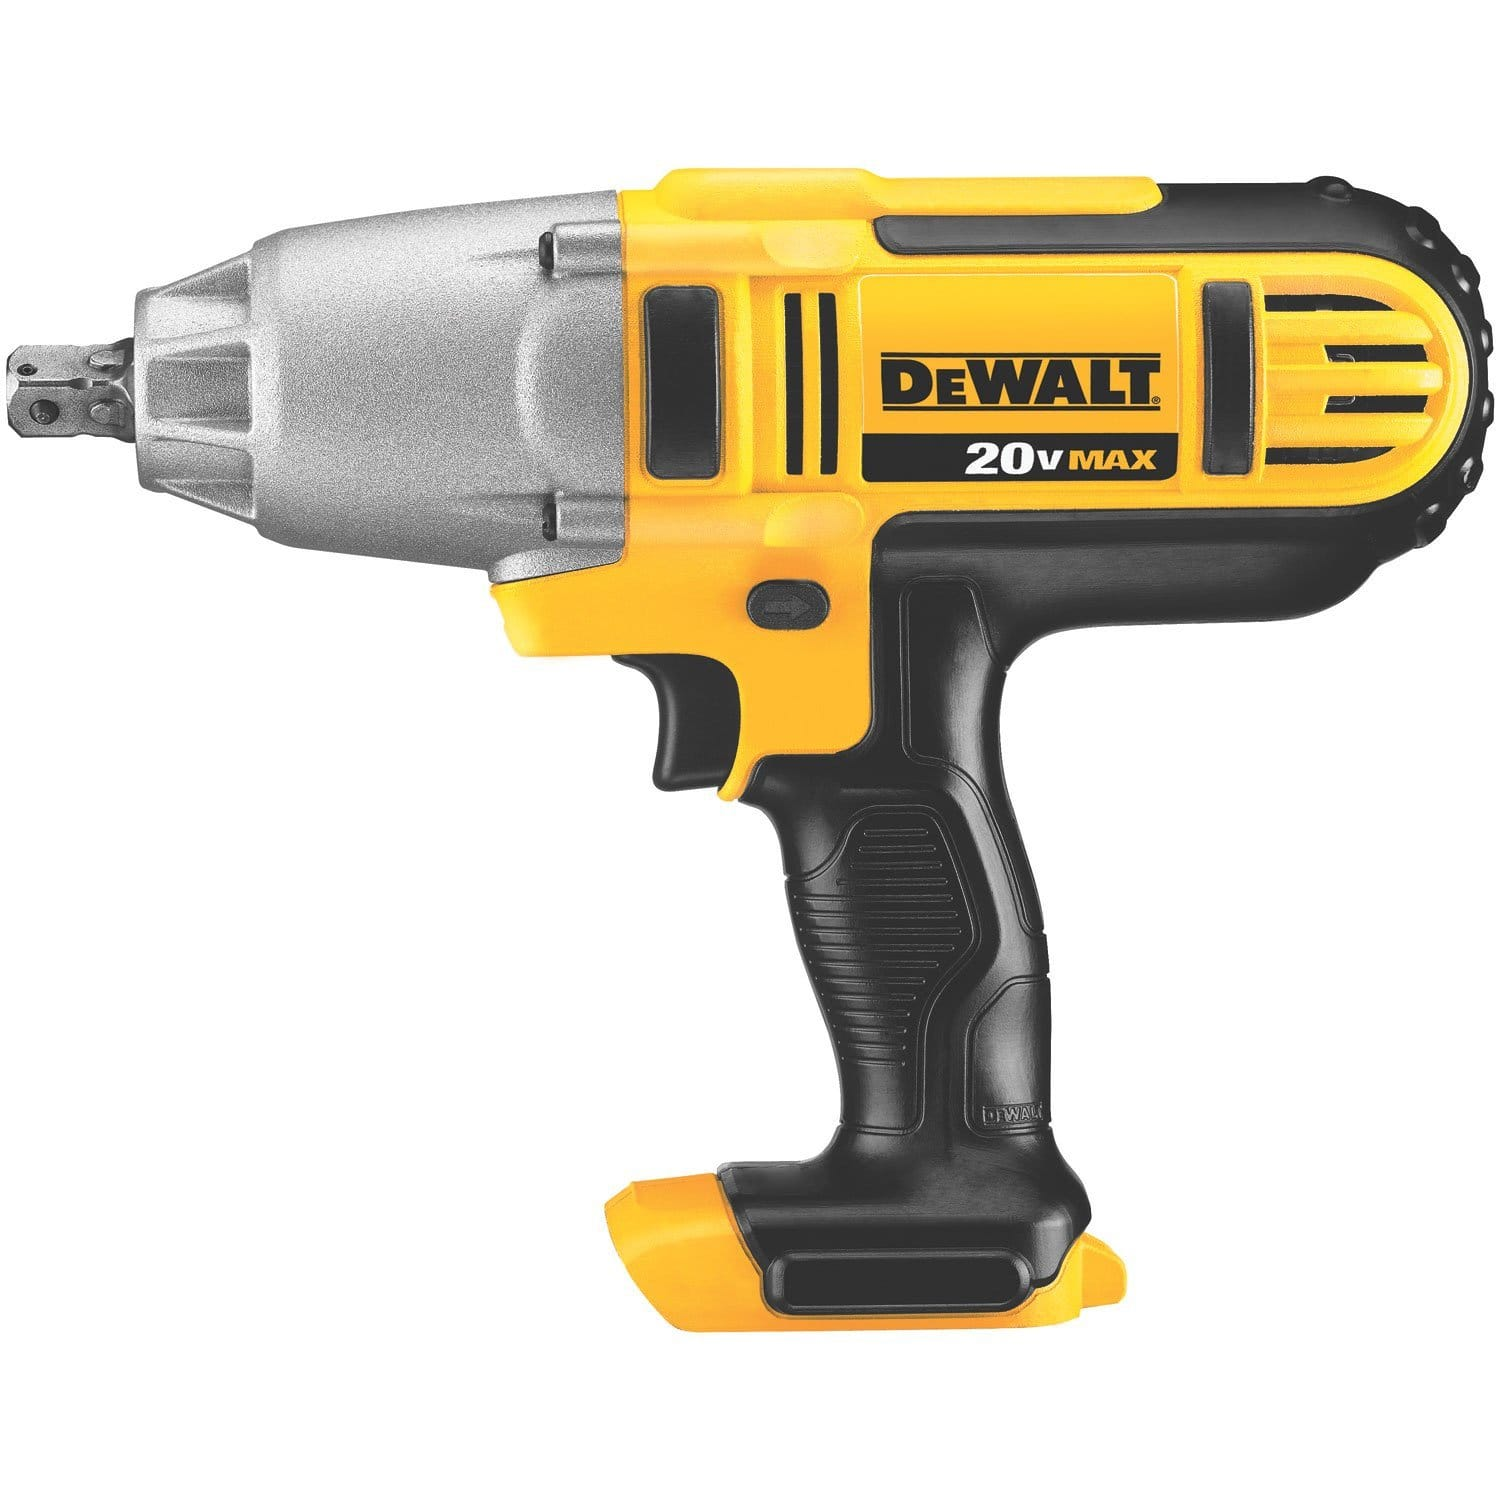 """DeWALT 20V MAX* Lithium Ion 1/2"""" Impact Wrench (Tool Only) DCF889B and more deals @ Murdoch`s free shipping $80 reg. $160"""